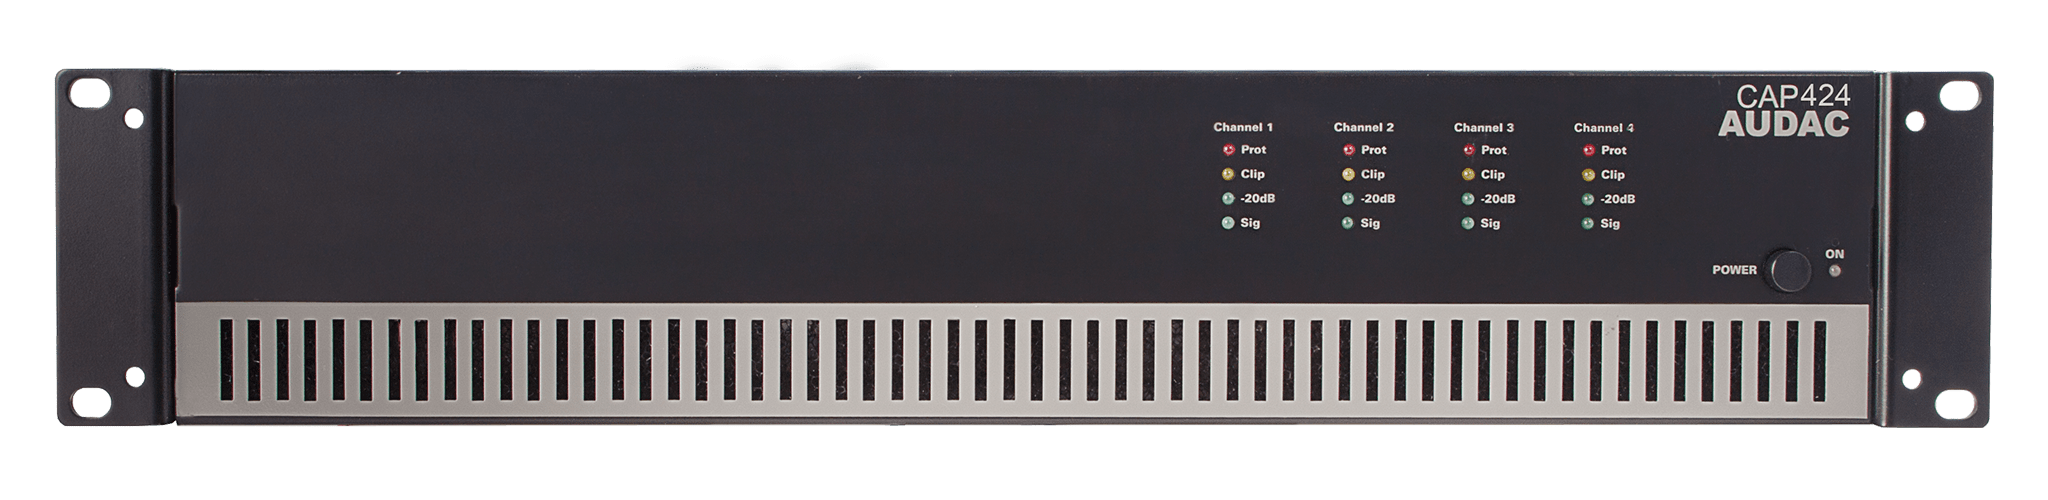 CAP424 - Quad-channel power amplifier 4 x 240W 100V